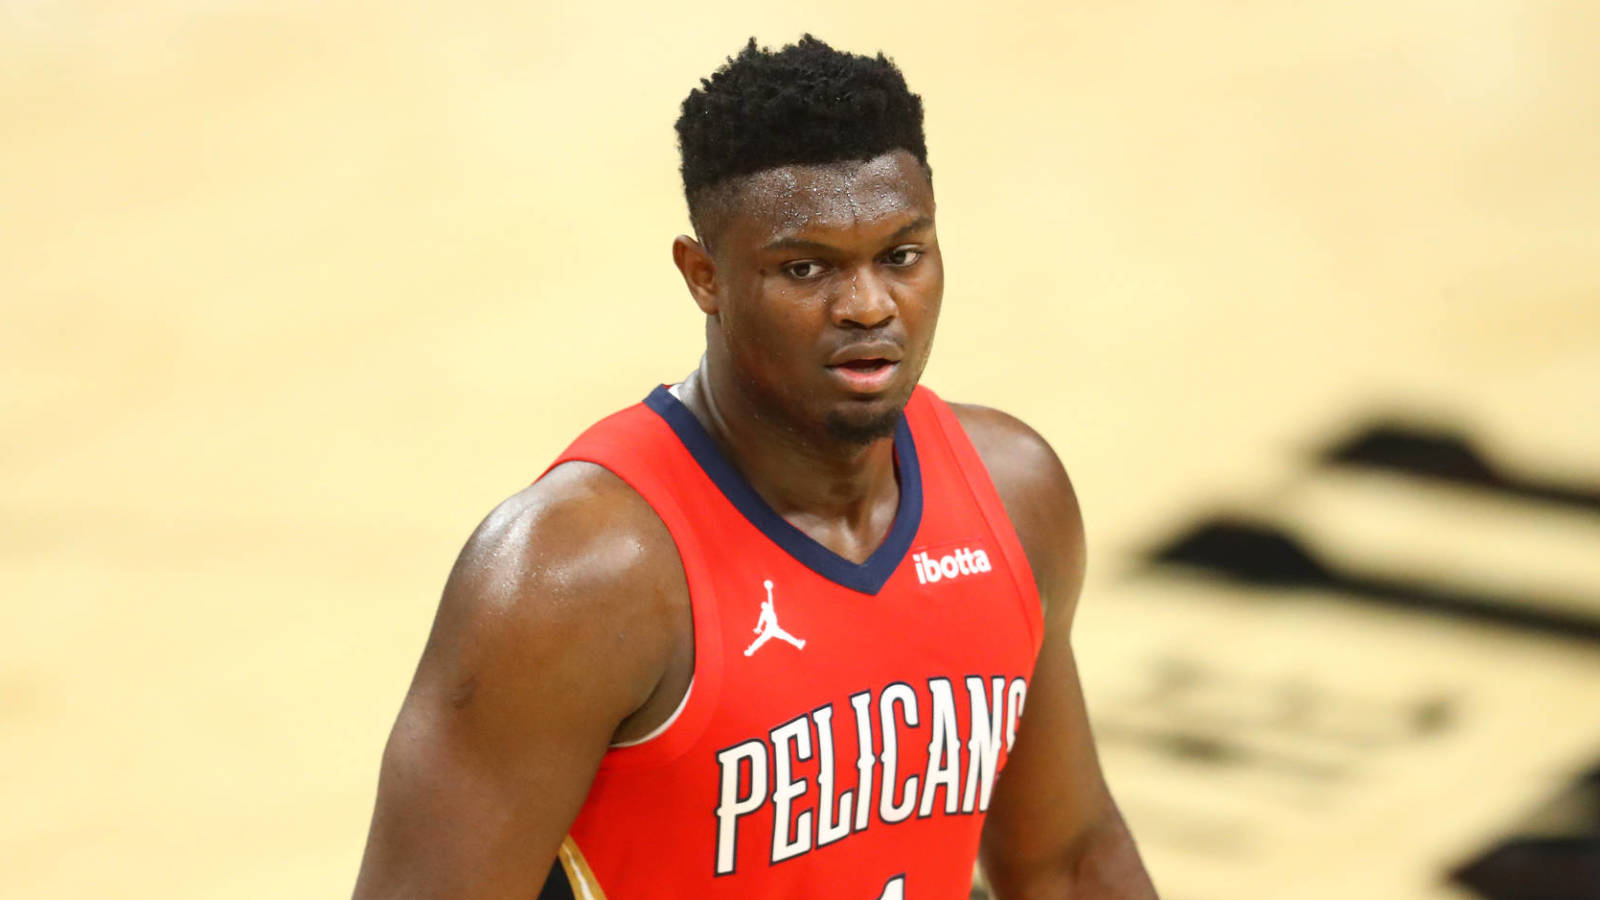 Pelicans' Zion Williamson cleared after inconclusive COVID-19 test results